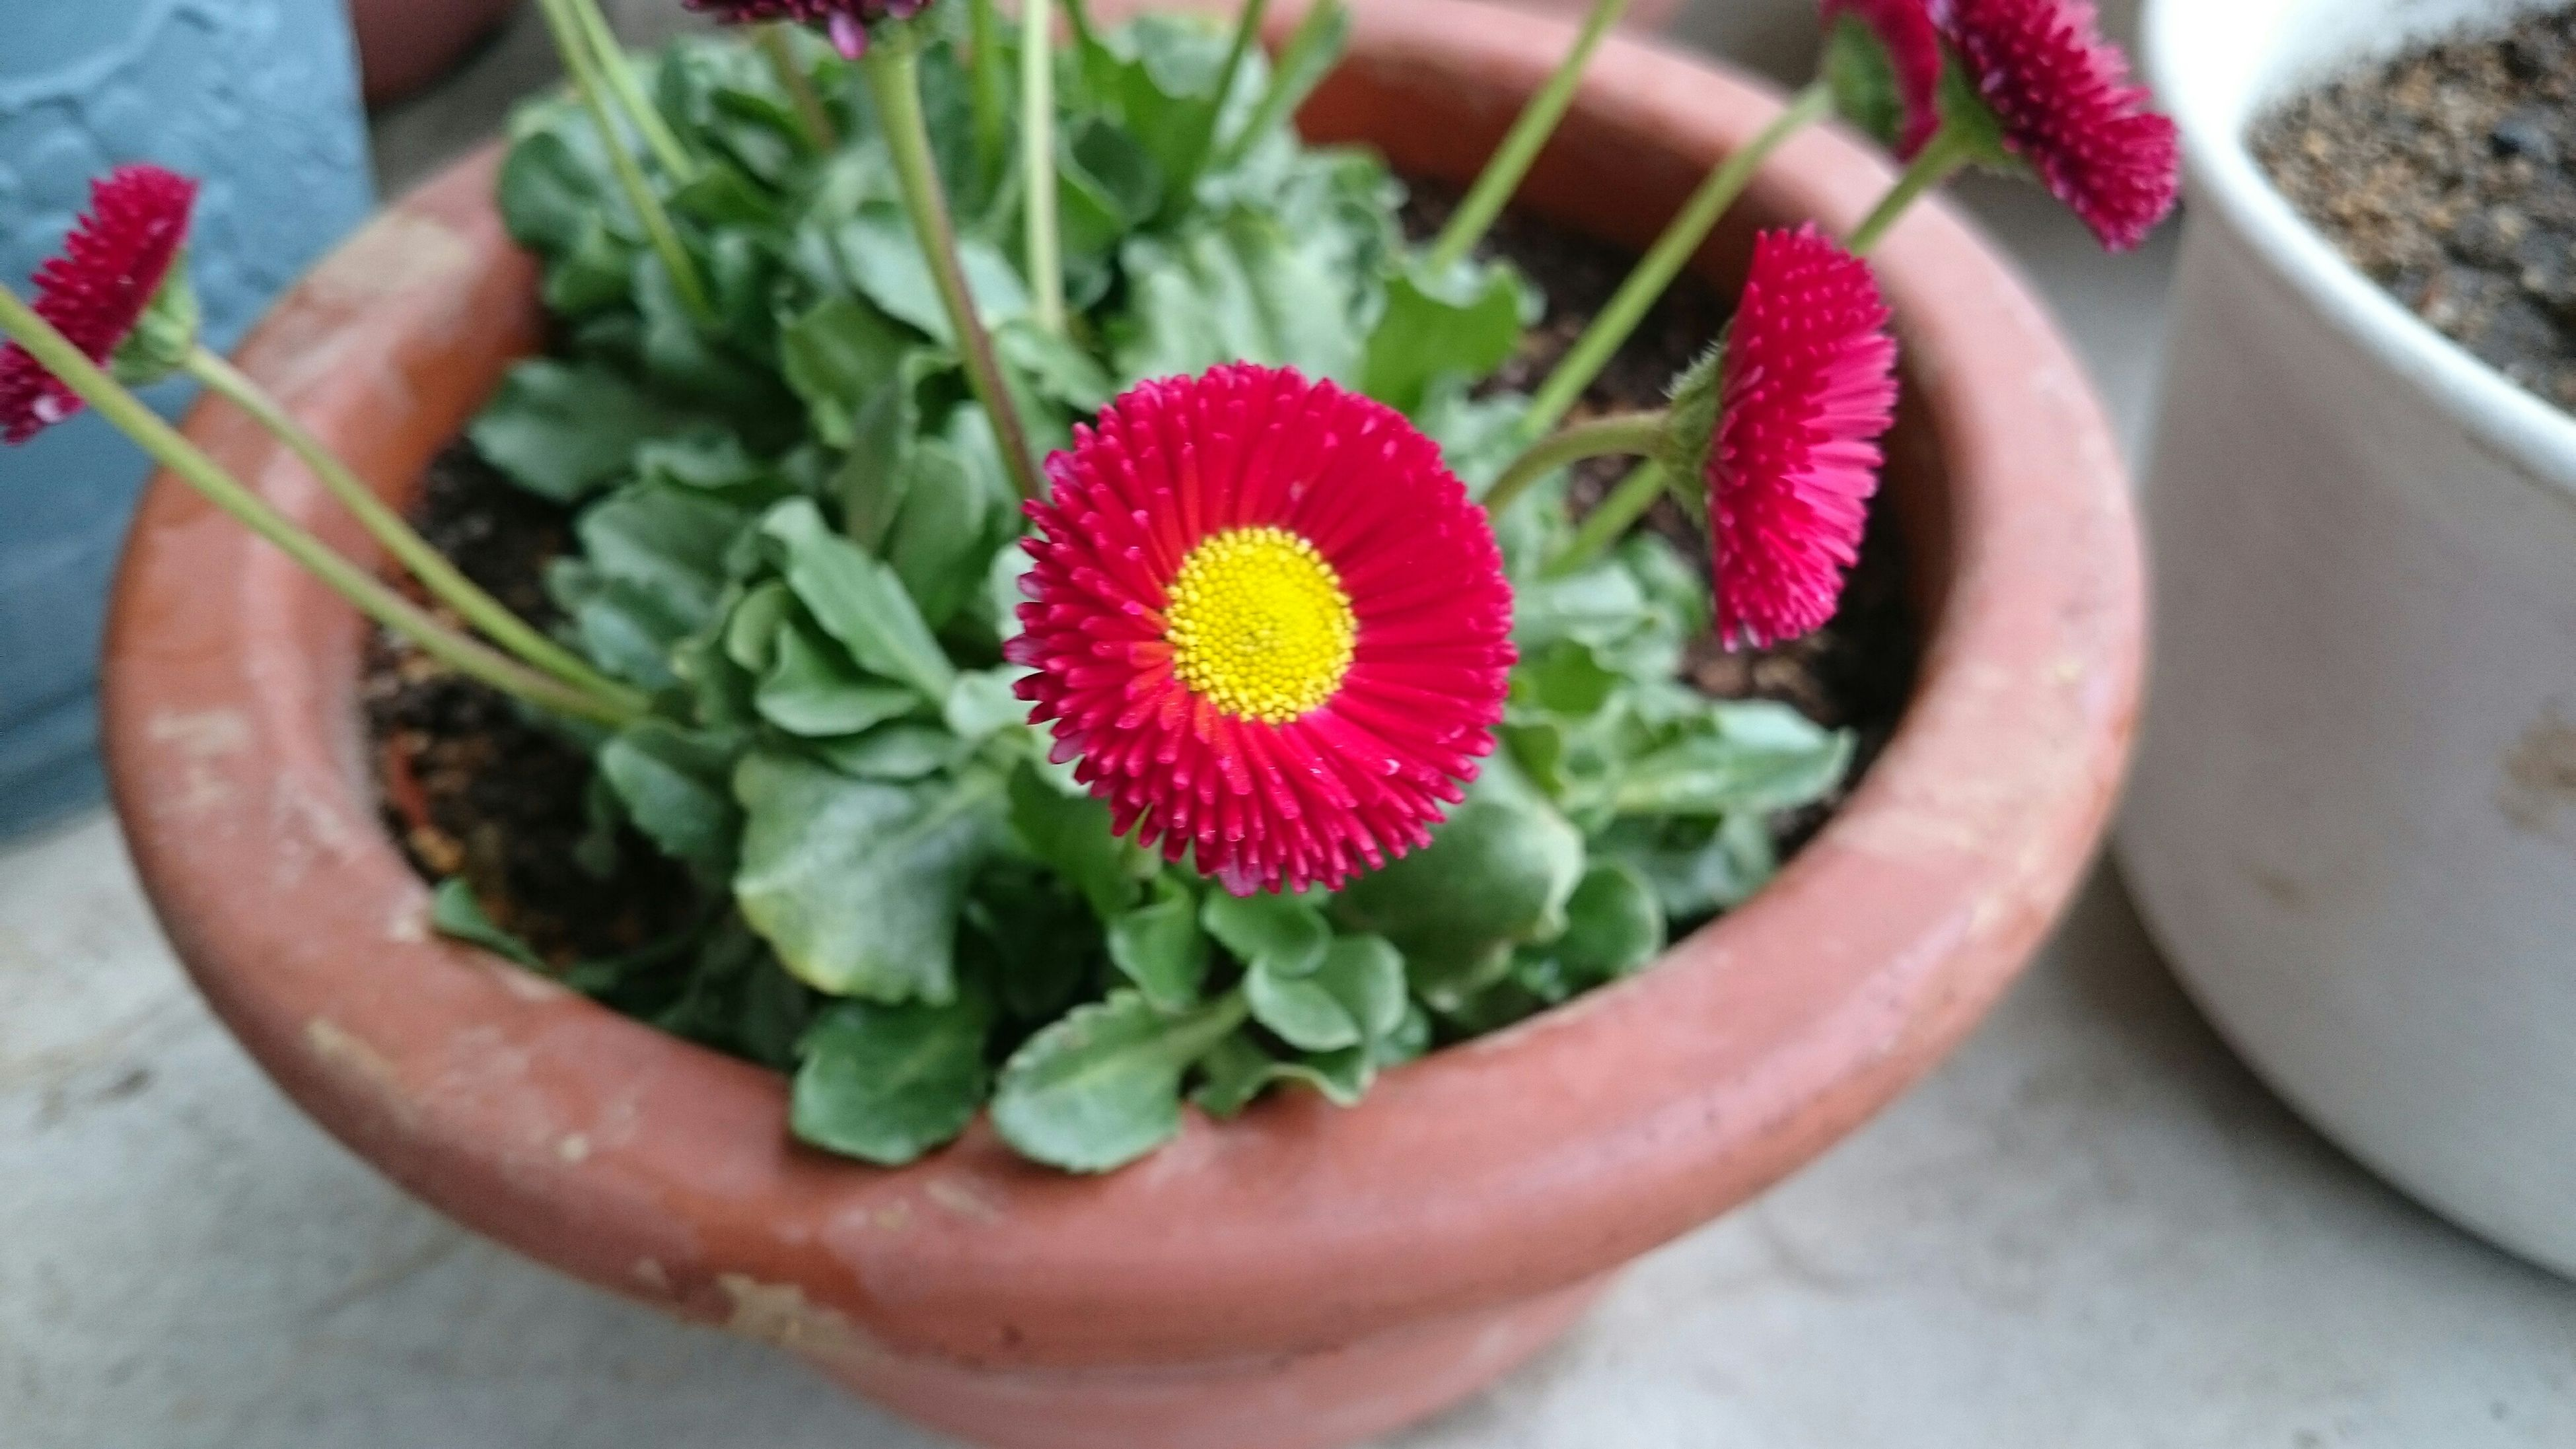 freshness, flower, petal, close-up, fragility, high angle view, flower head, growth, leaf, plant, beauty in nature, focus on foreground, cropped, part of, nature, indoors, pink color, single flower, potted plant, red